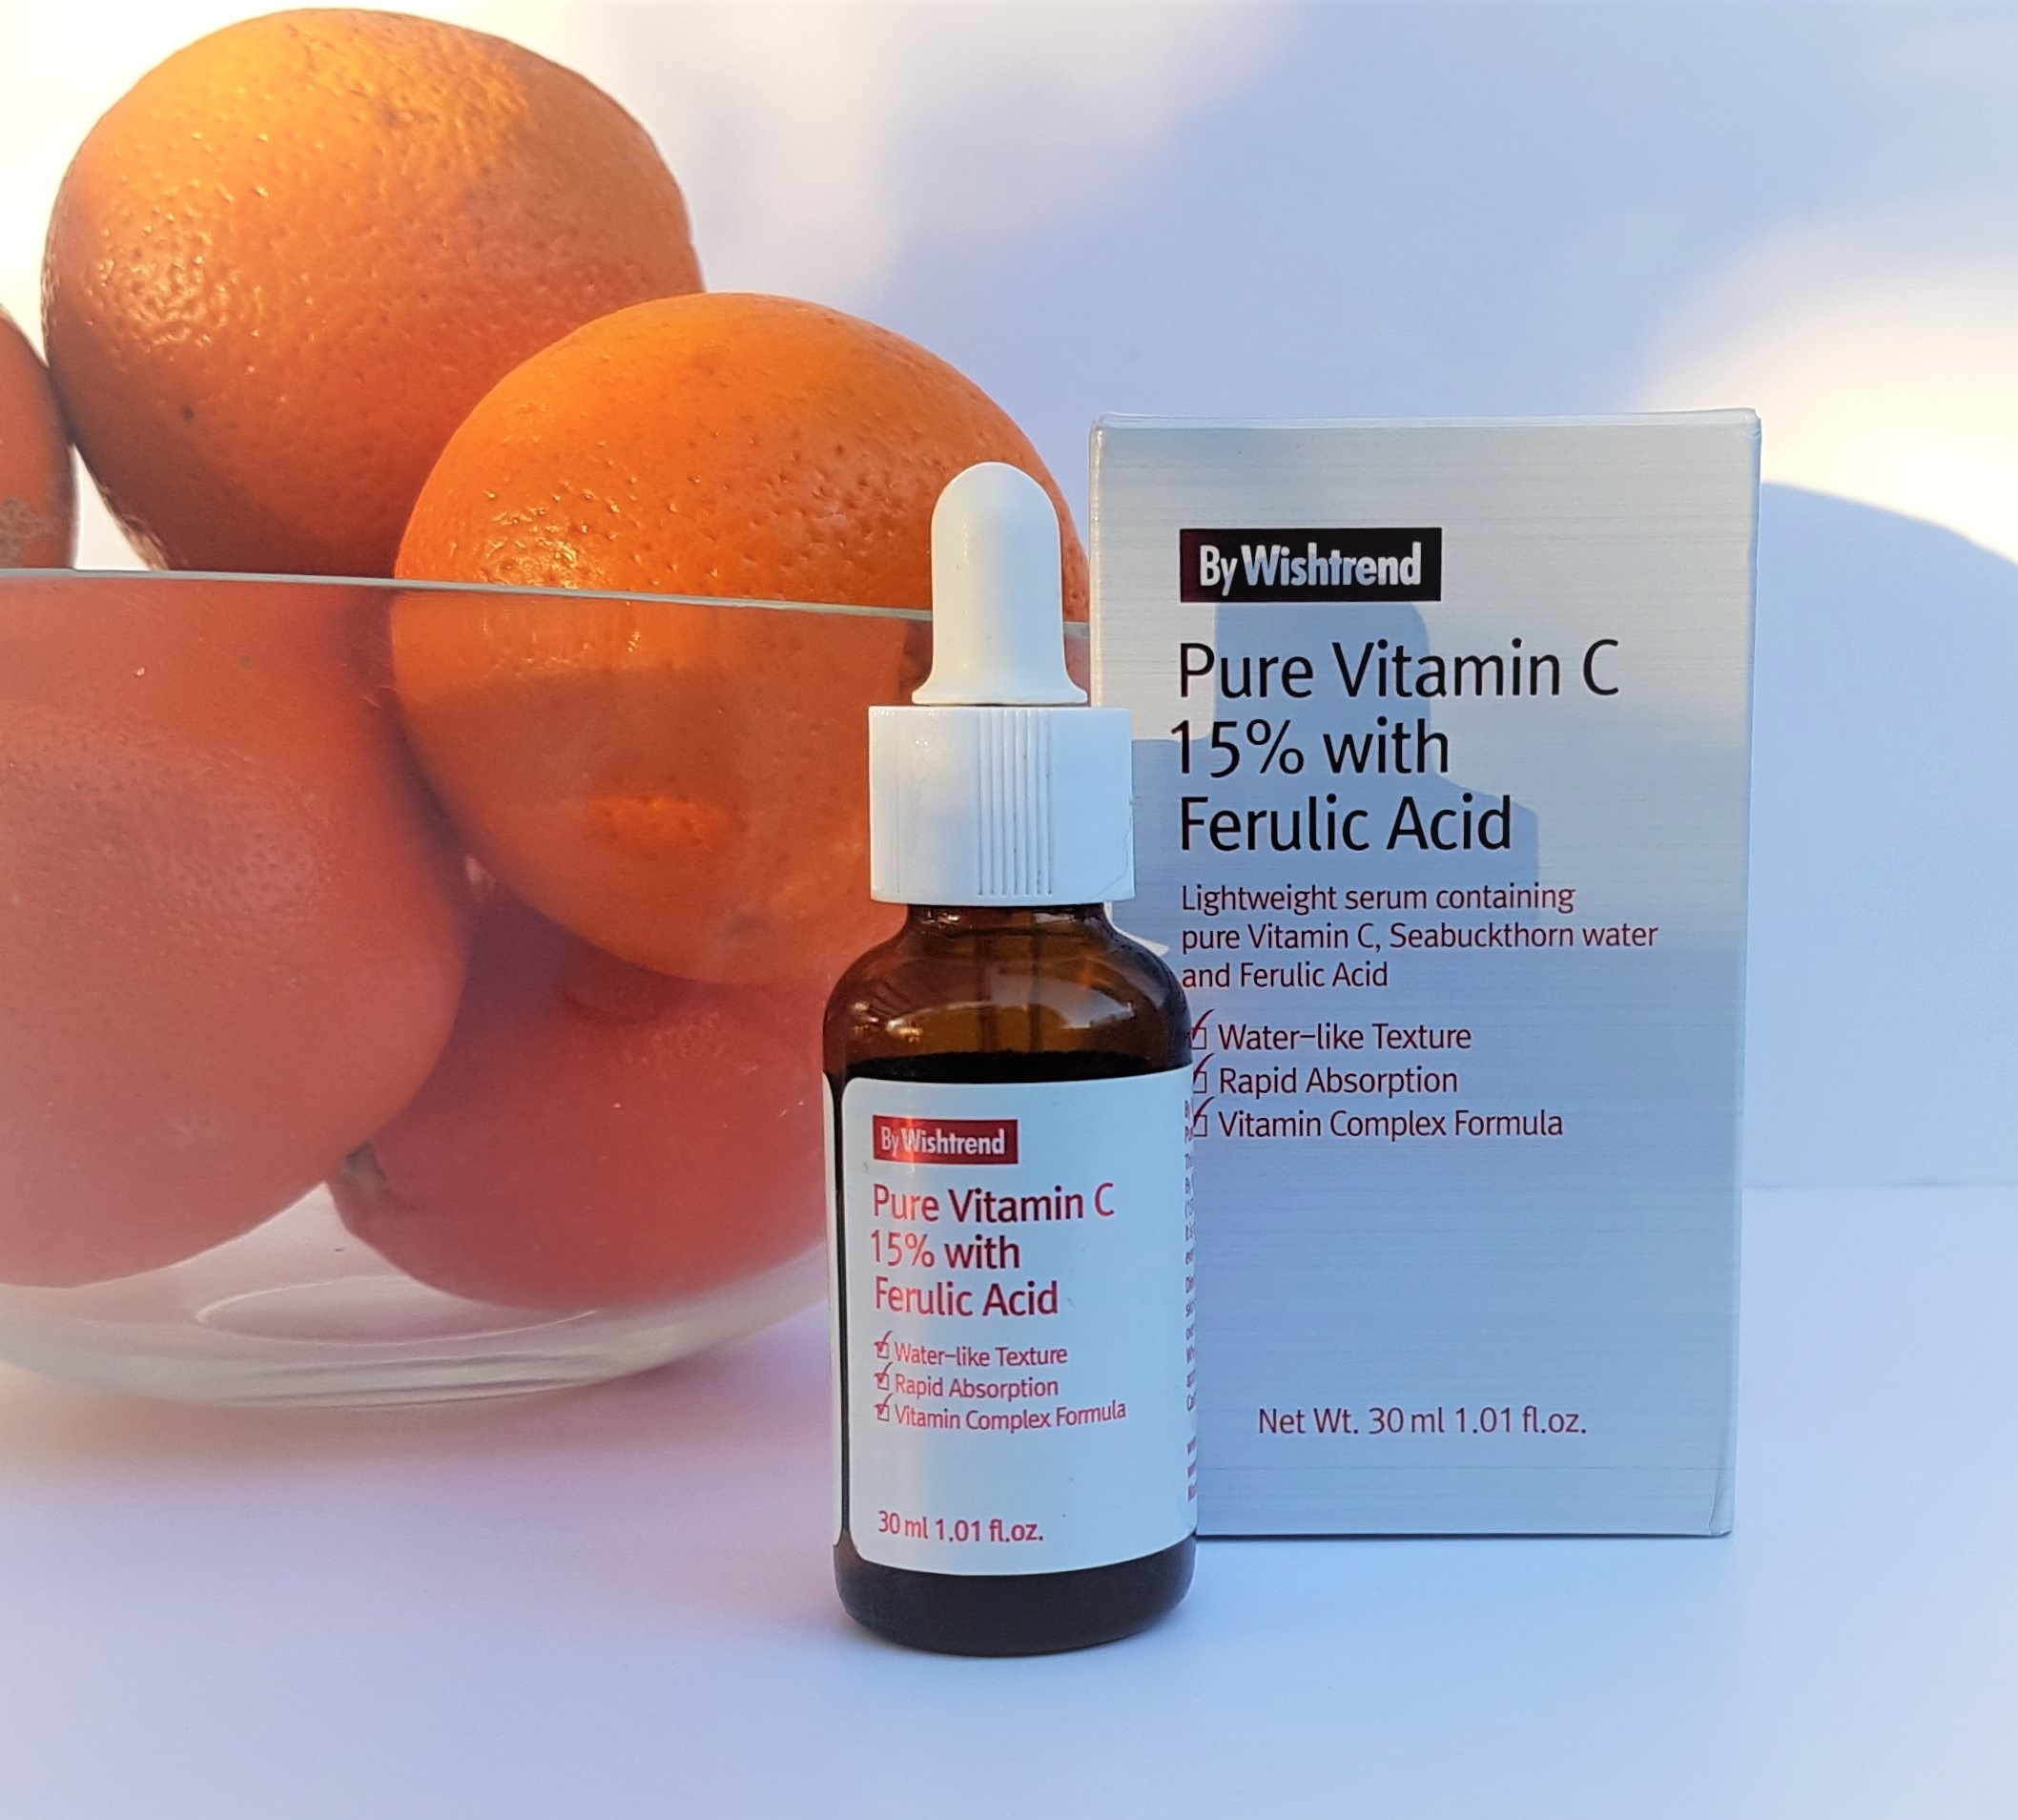 ByWishtrend Pure Vitamin C 15% with Ferulic Acid Serum